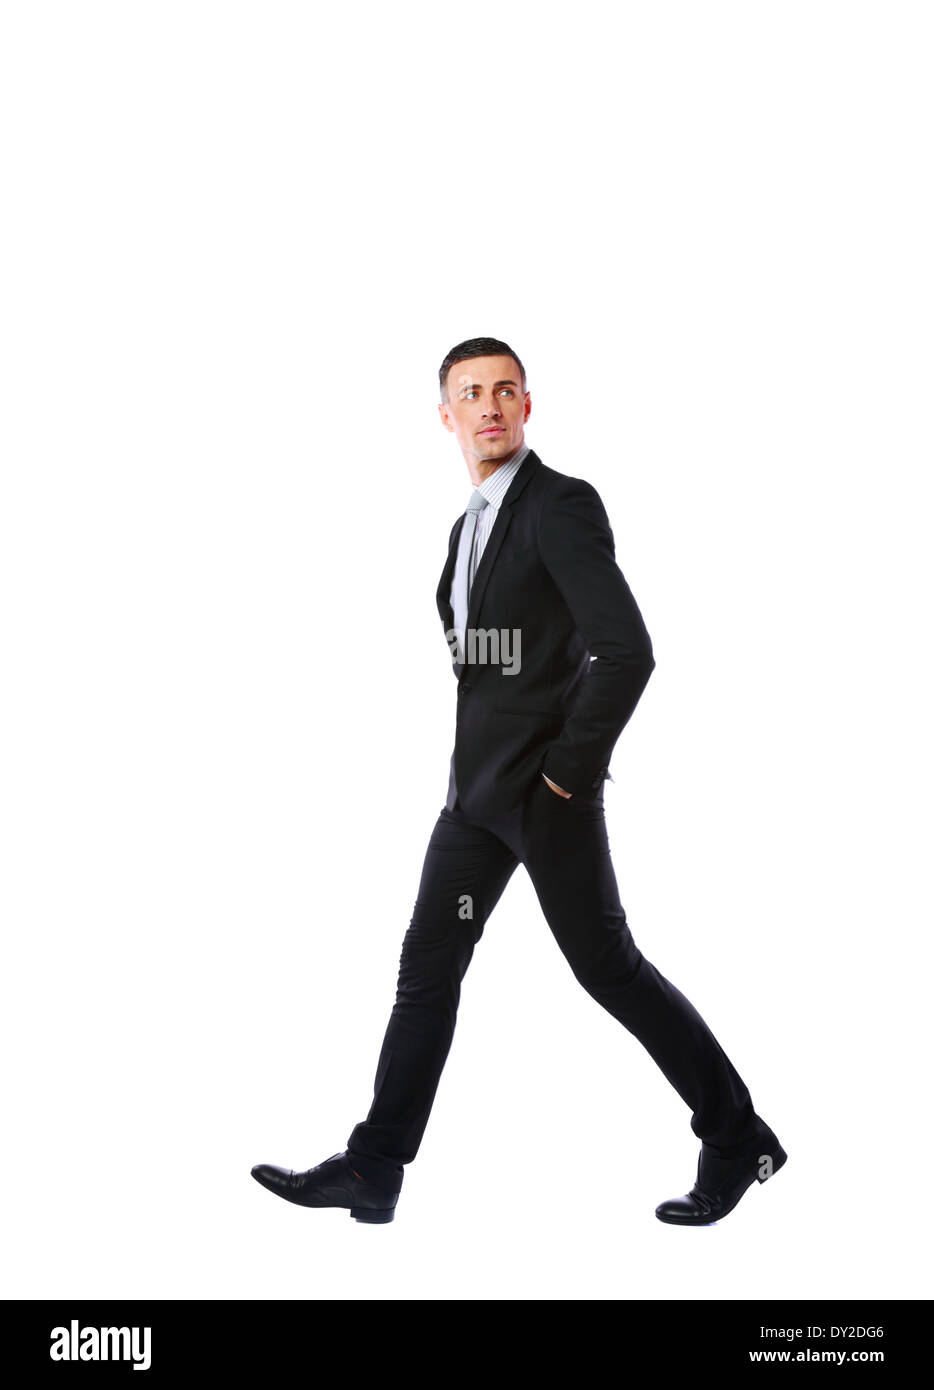 Side view portrait of a businessman walking isolated on a white background - Stock Image